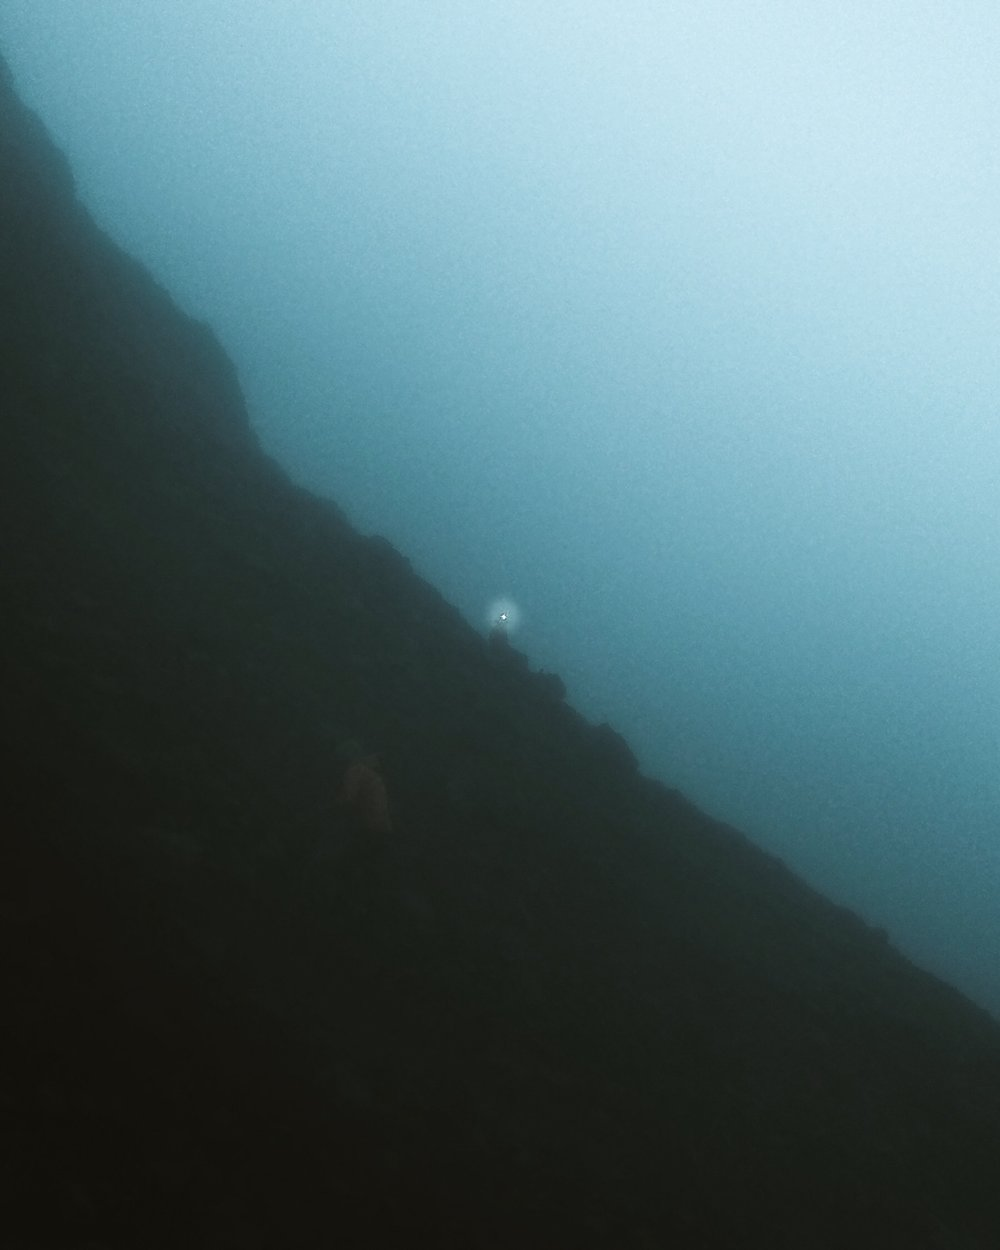 In the dark of dusk, we found fog laden mountains that rendered the grown wet beneath us. The rock slipped constantly and once we got to a point no longer surpassable we simply laid down our efforts.